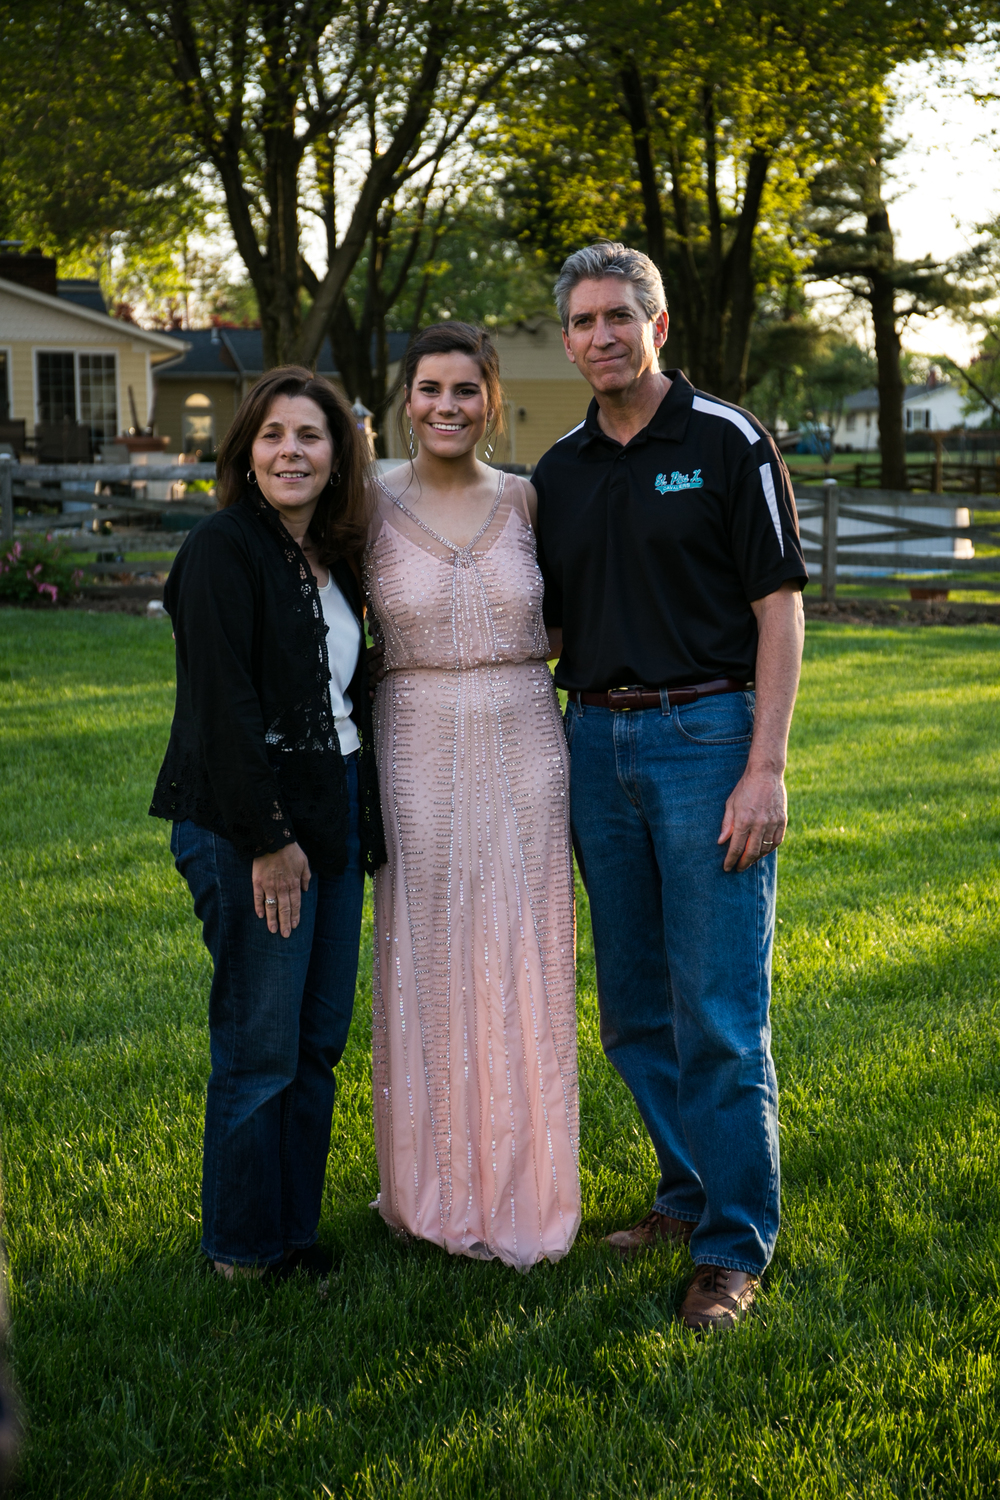 Mount-De-Sales-Pre-Prom-May-2014-100.jpg